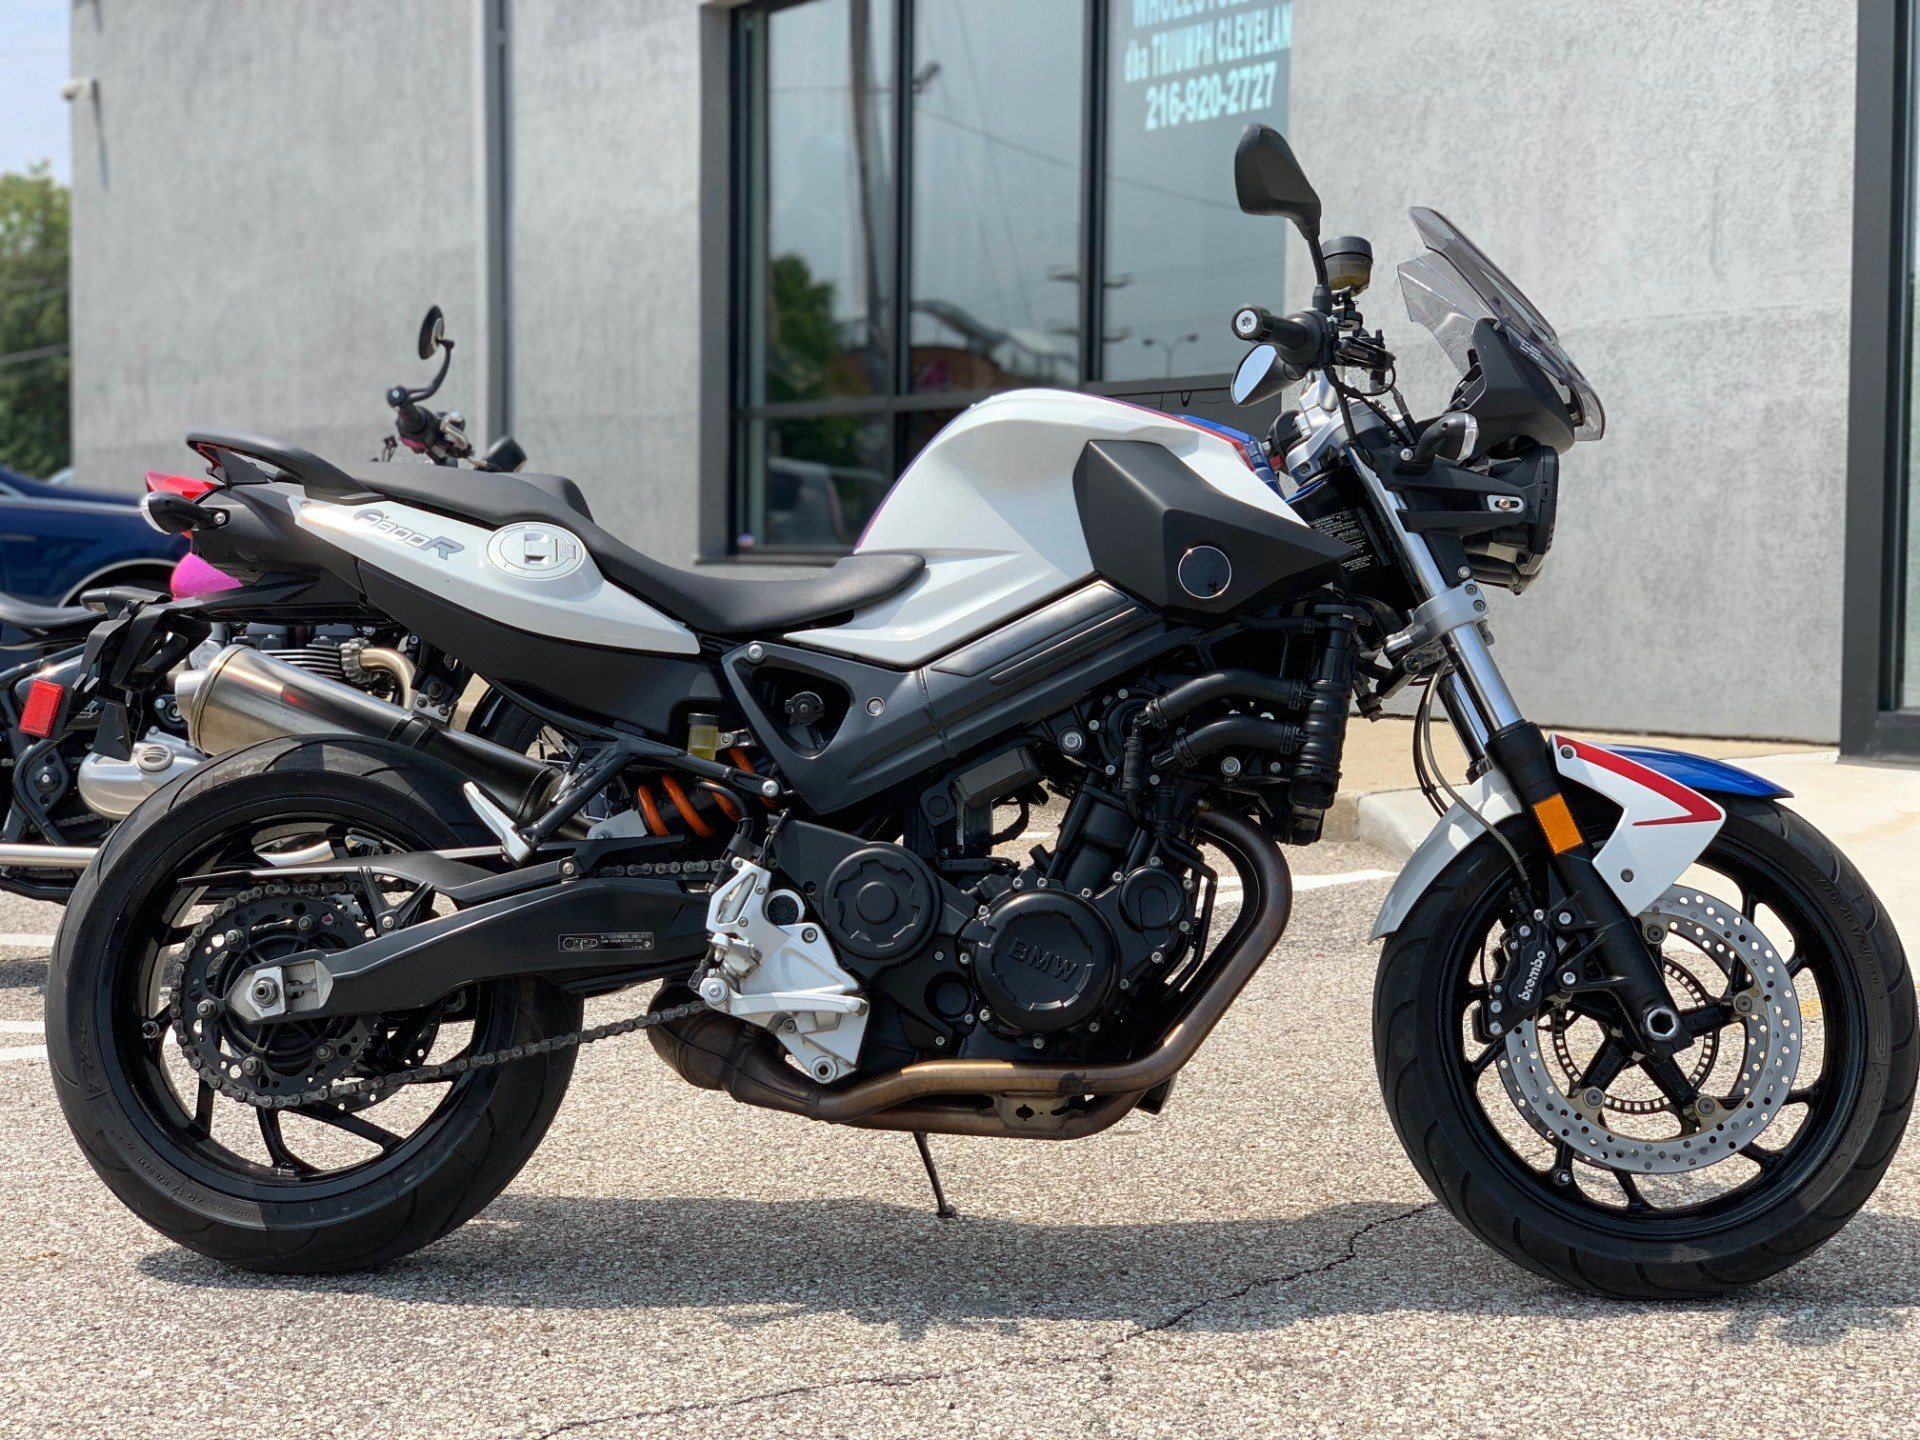 2011 BMW F 800 R in Cleveland, Ohio - Photo 1